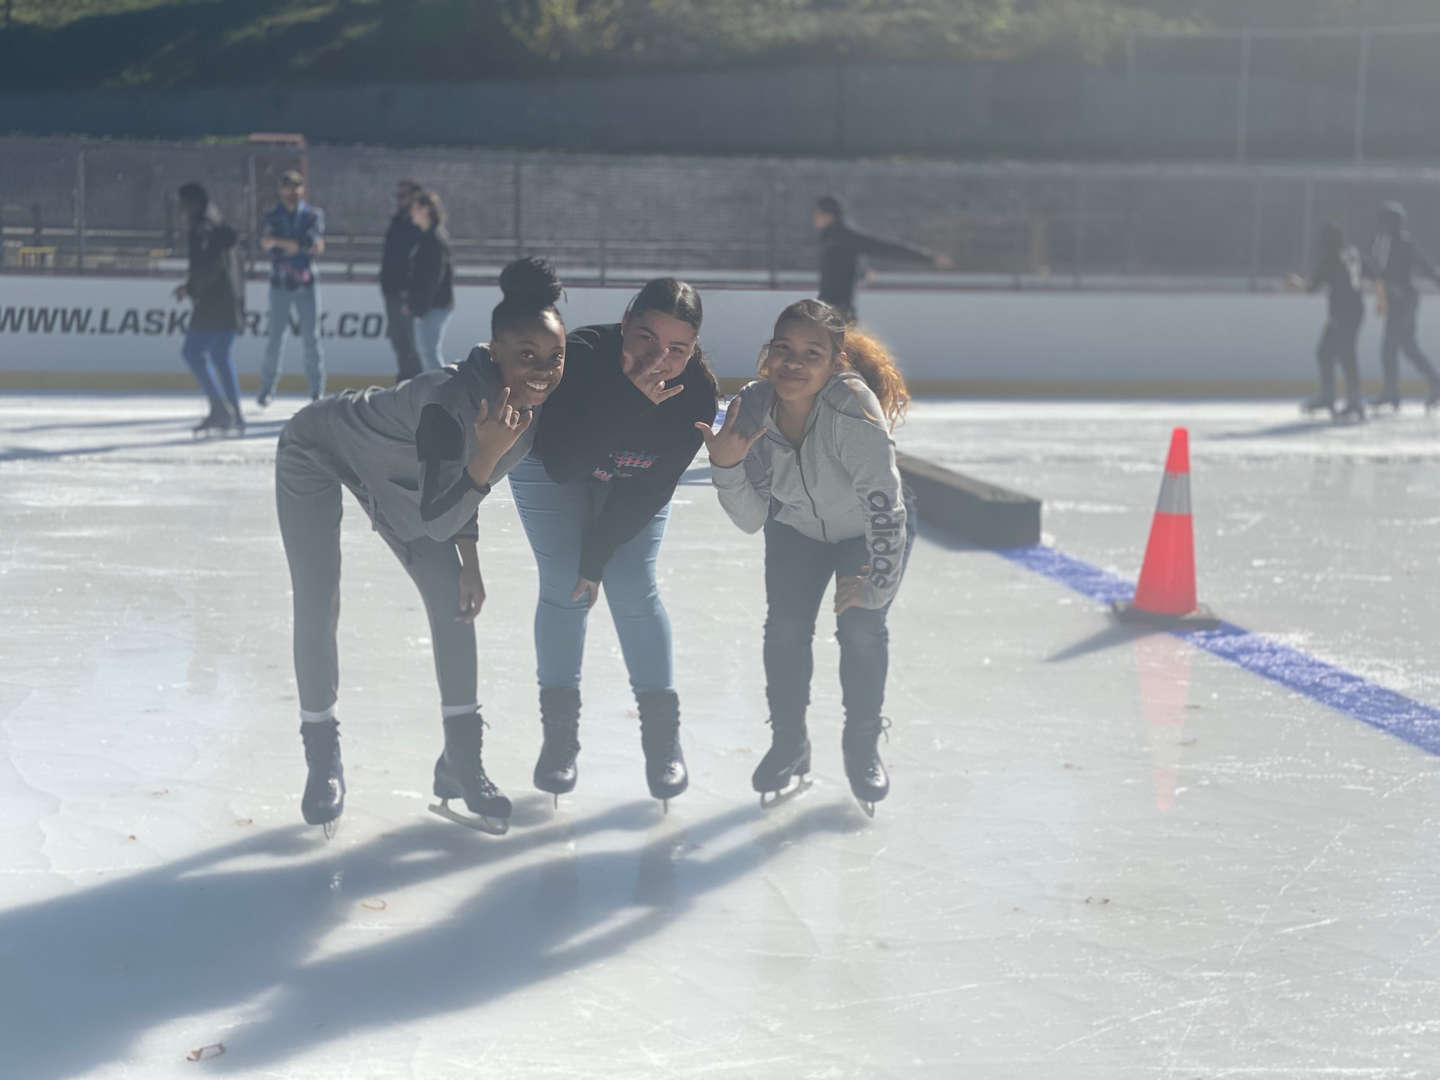 Three students pose on the ice skating rink